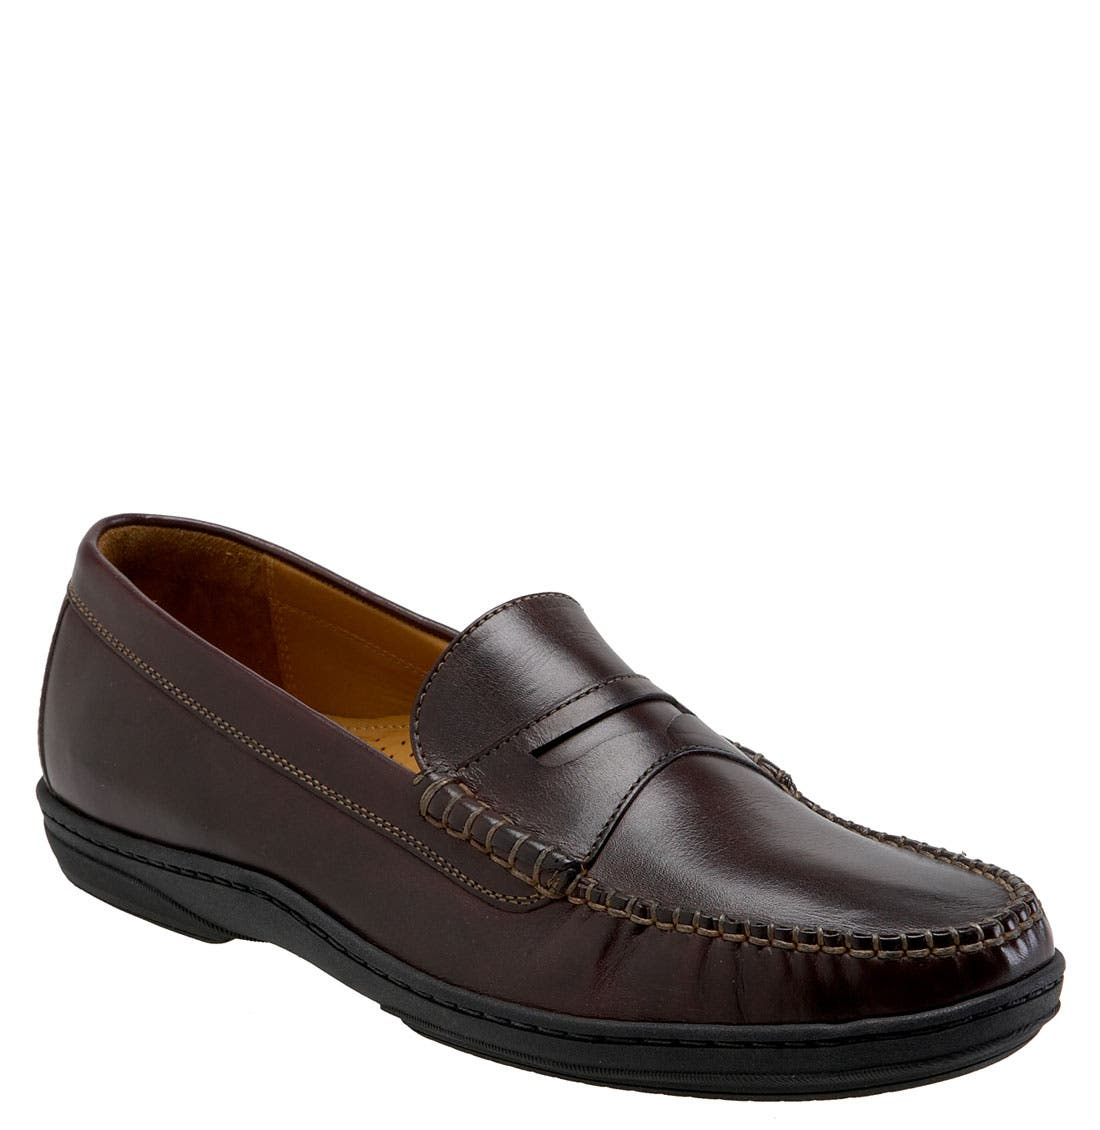 Alternate Image 1 Selected - Cole Haan 'Pinch Cup' Penny Loafer